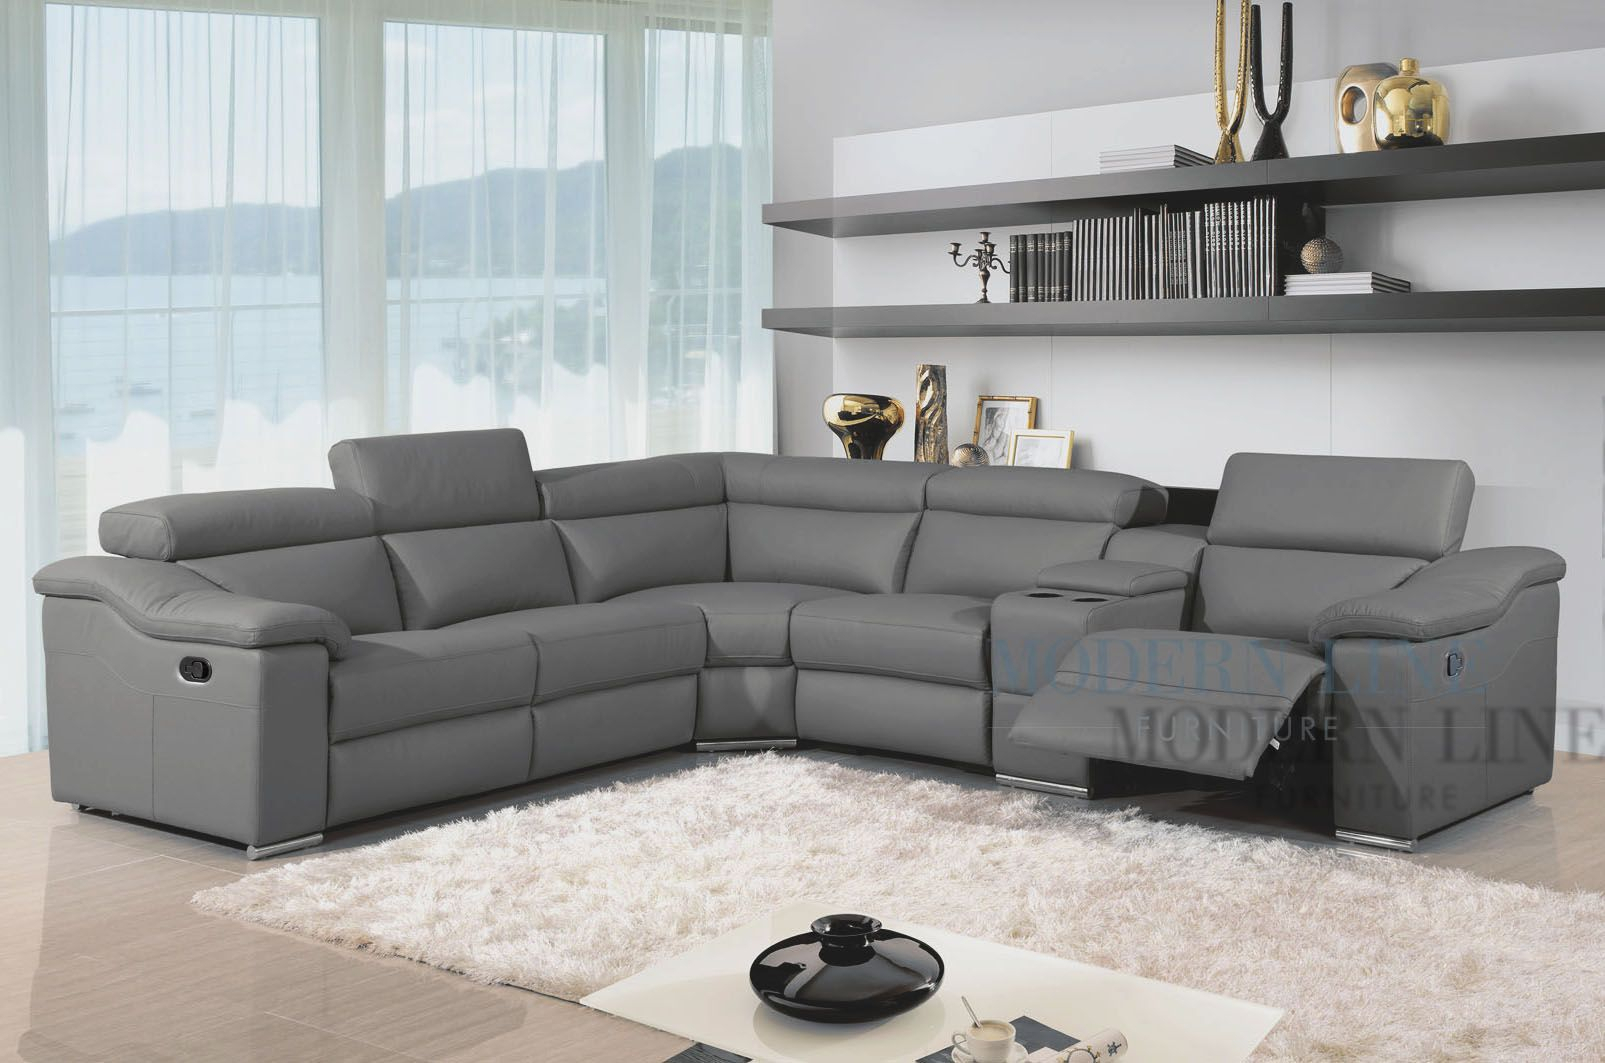 Awesome Great Charcoal Grey Sectional Sofa 29 About Remodel Home Throughout Gina Grey Leather Sofa Chairs (View 10 of 20)